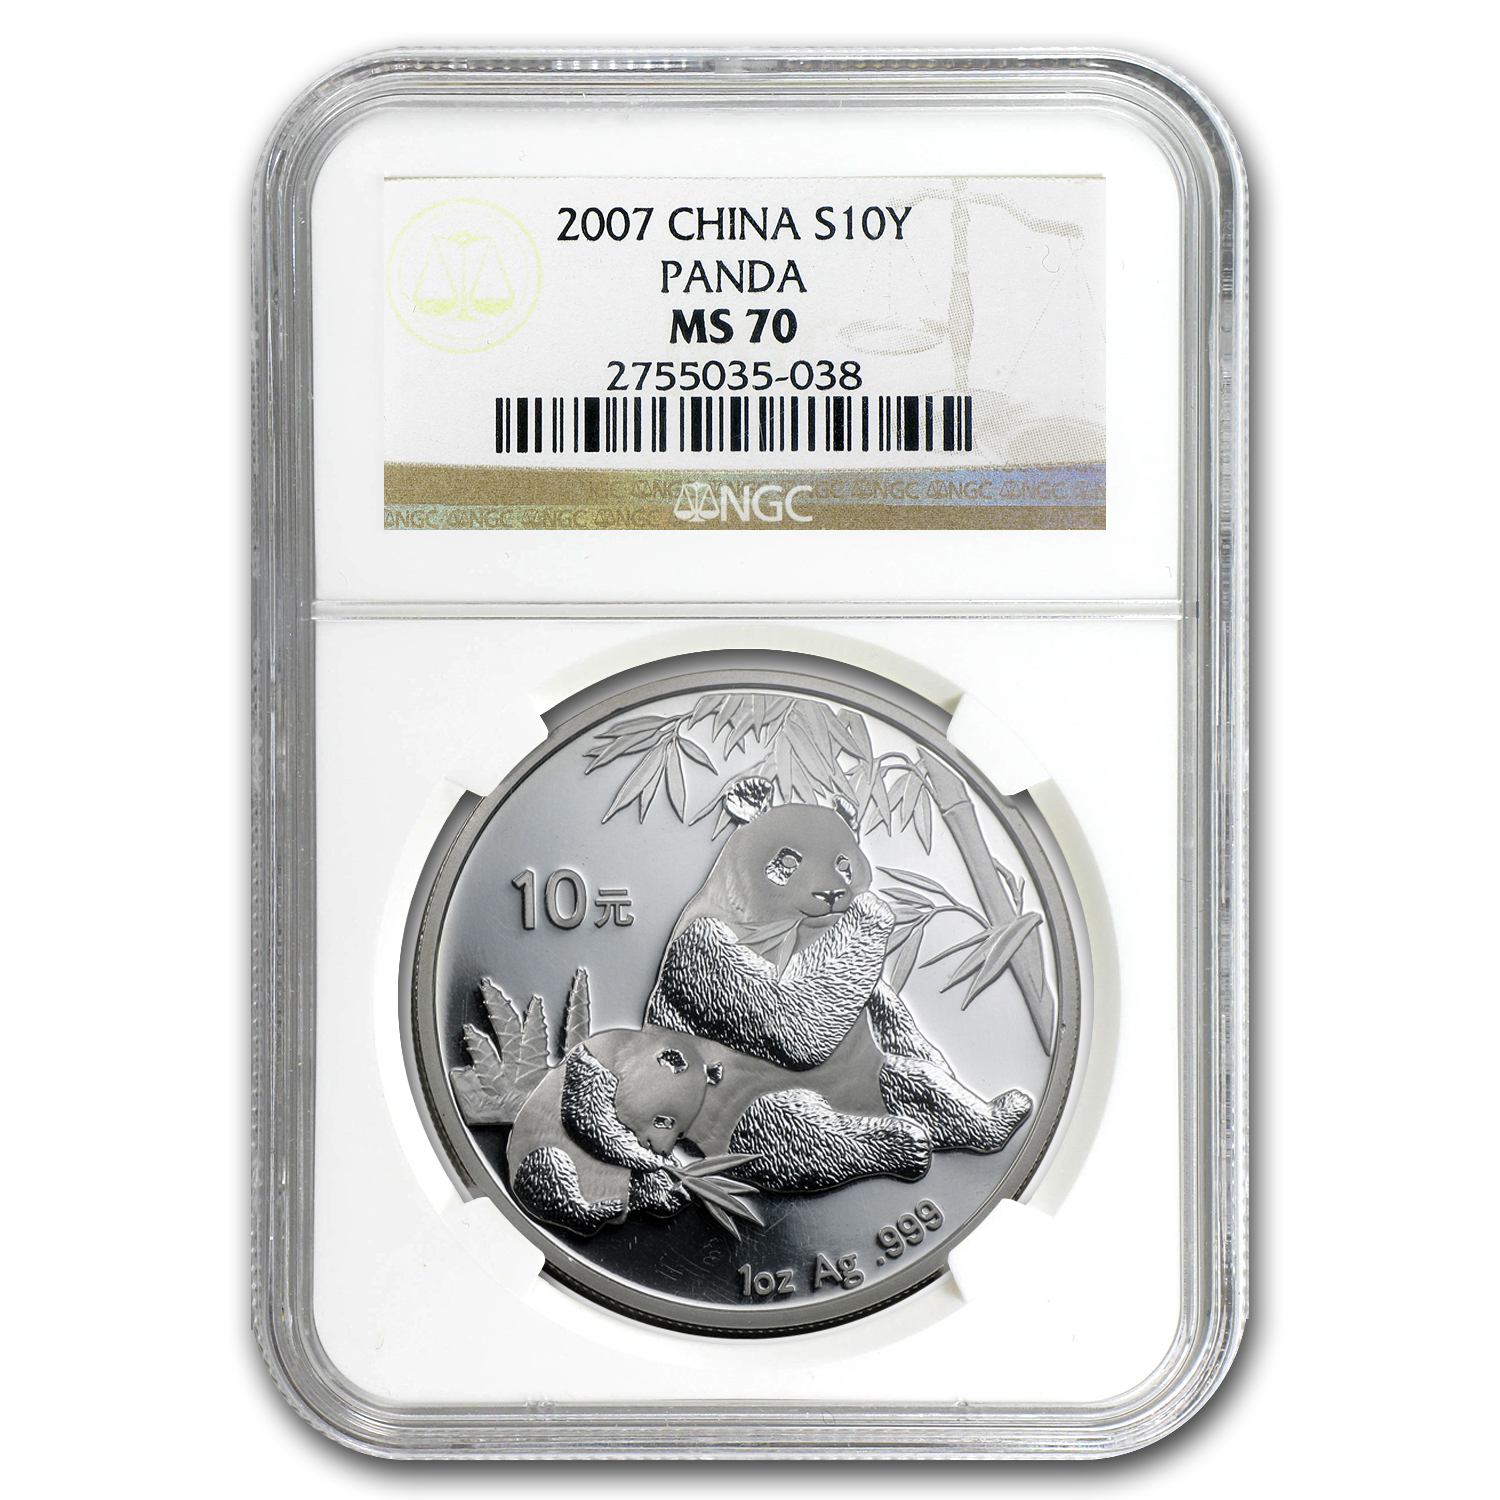 2007 1 oz Silver Chinese Panda - MS-70 NGC